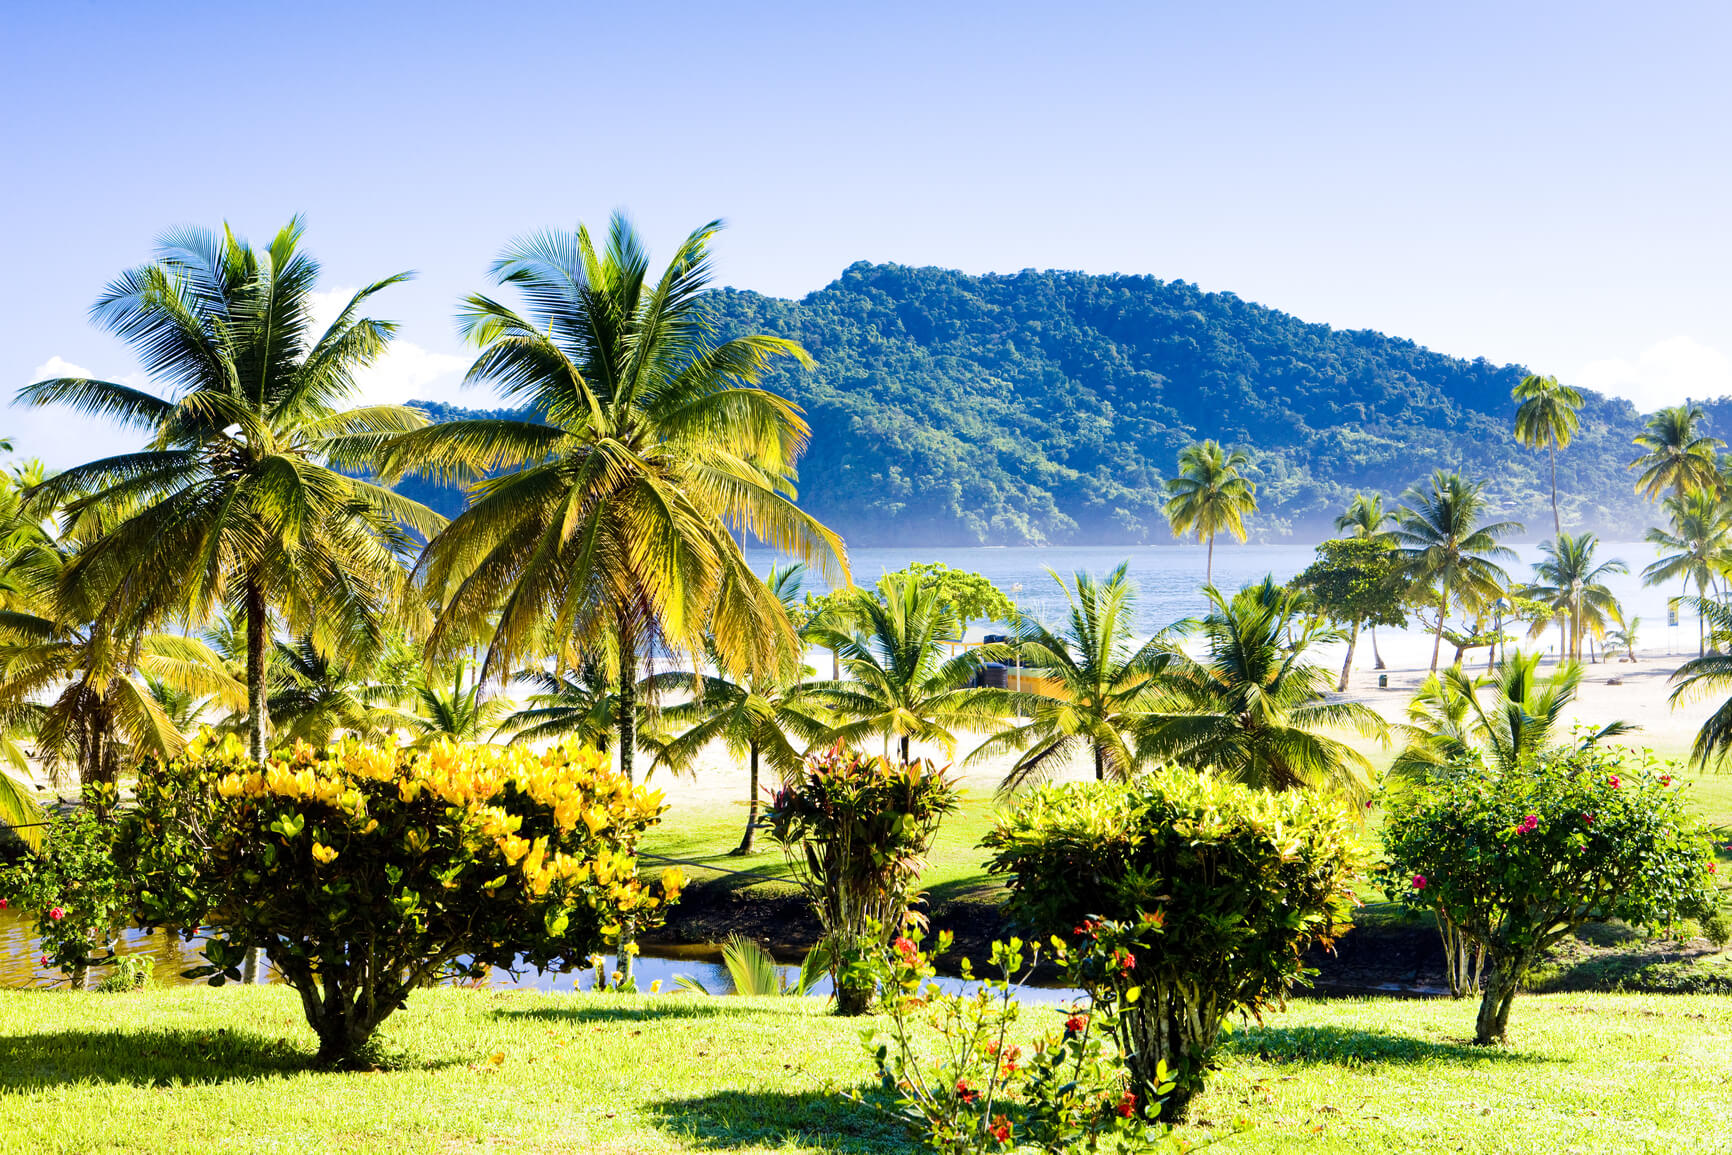 Fort Lauderdale to Trinidad for only $233 roundtrip